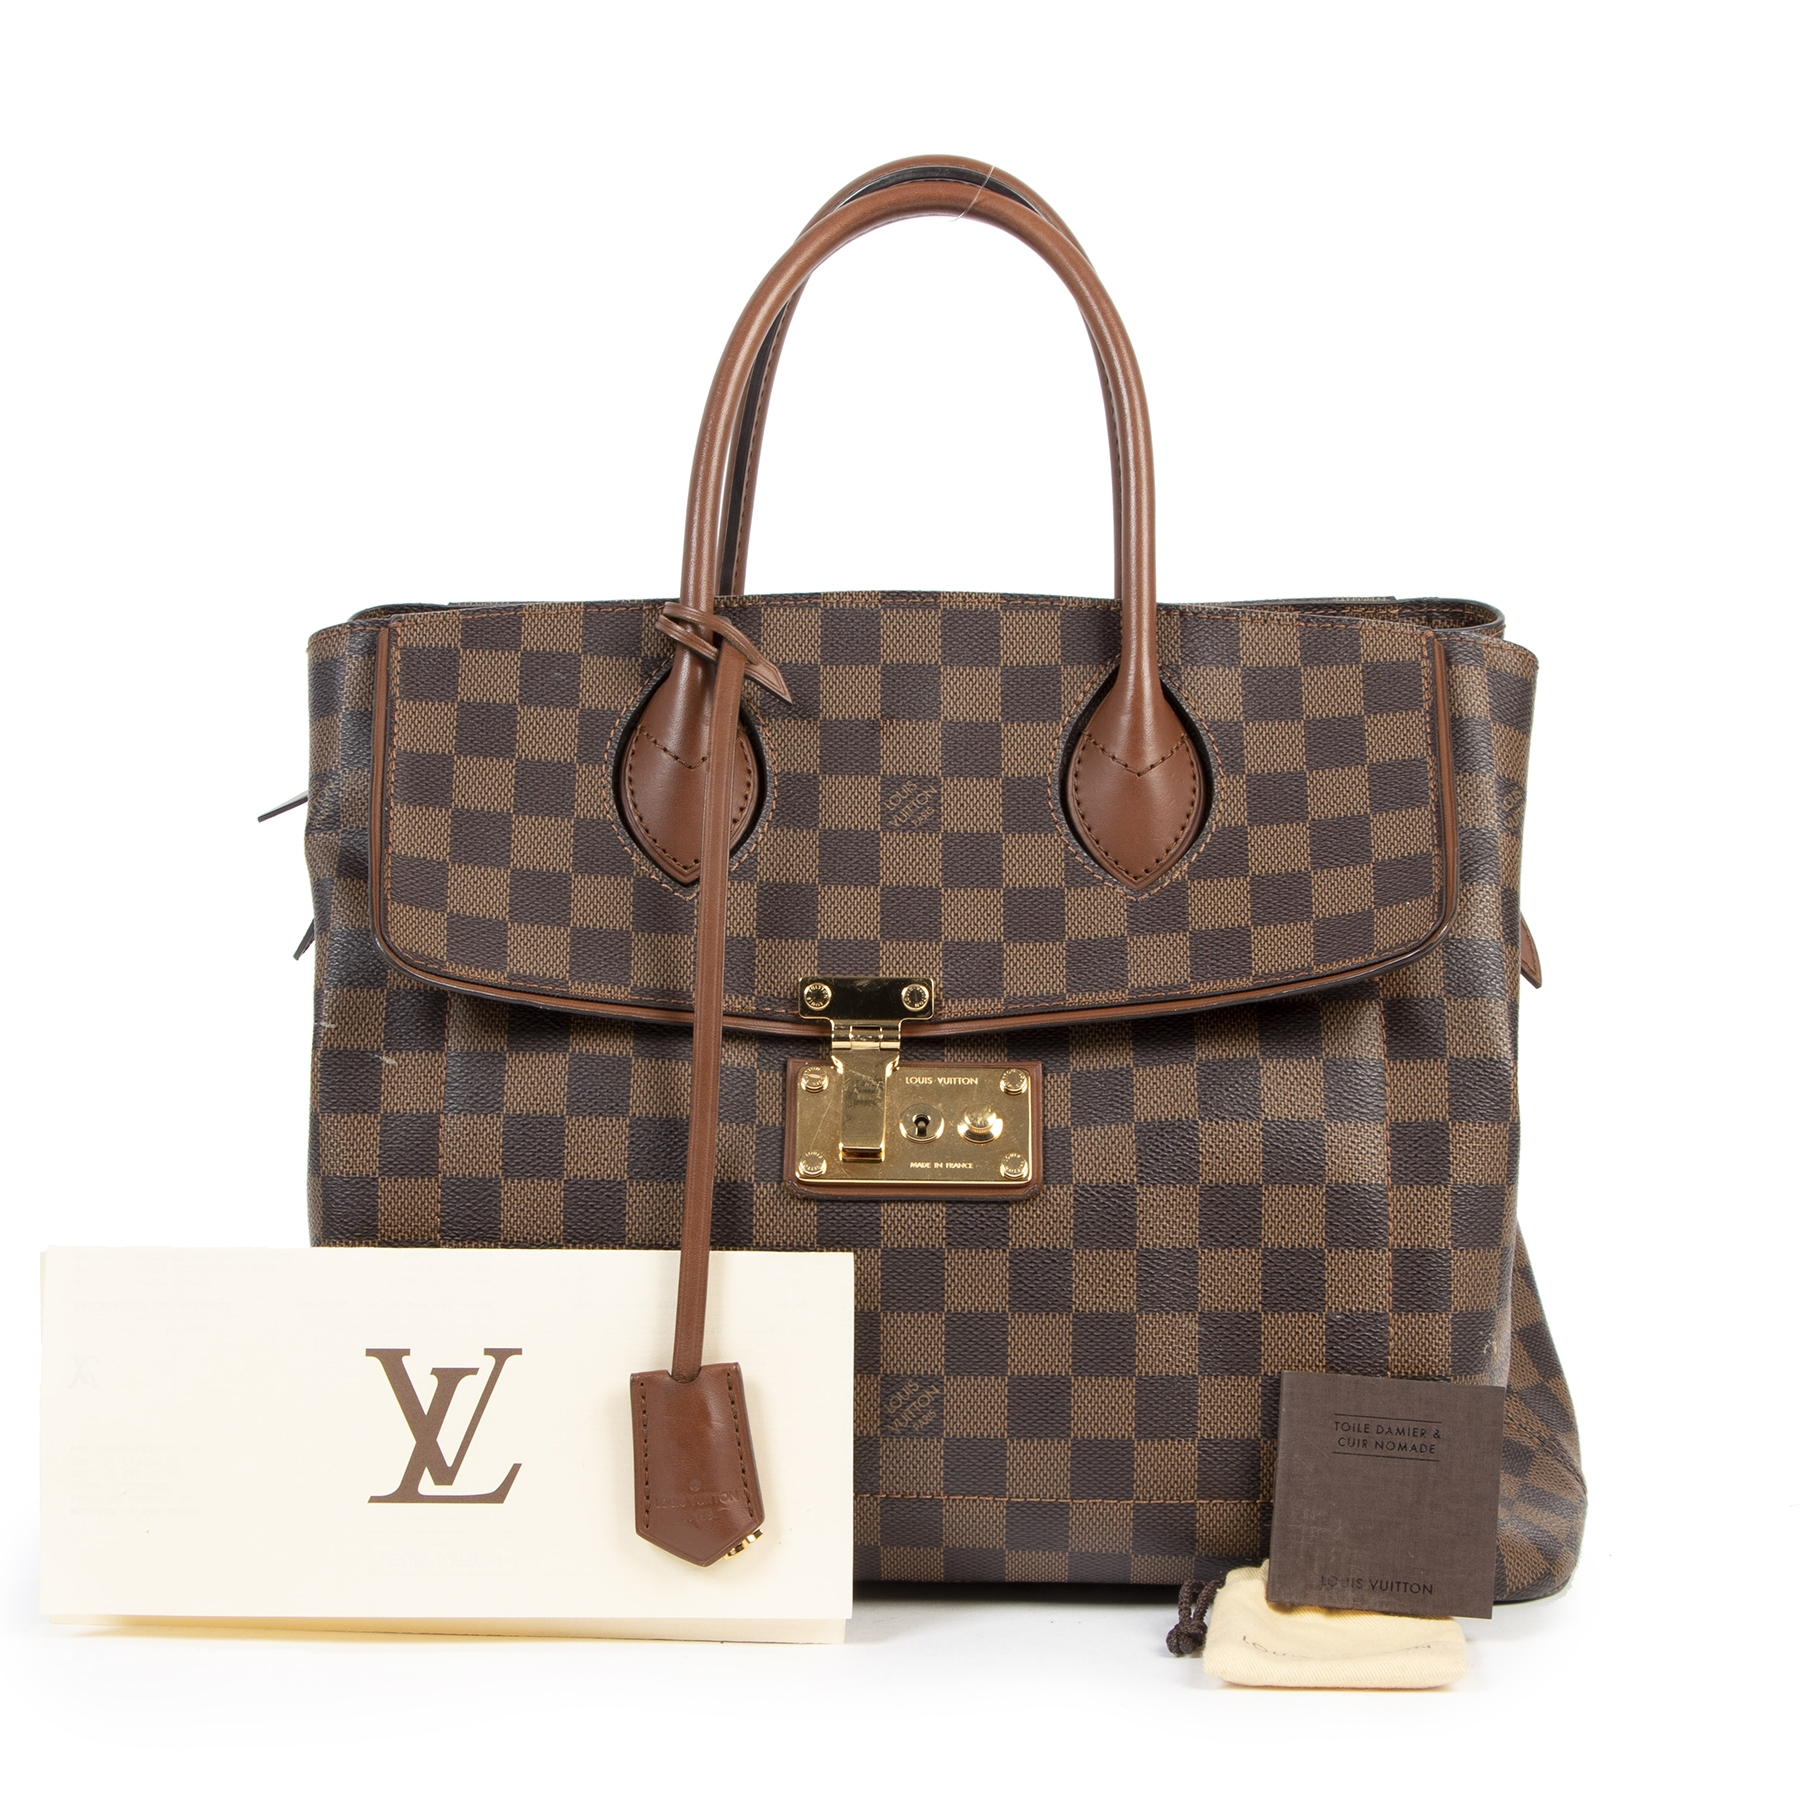 Authentic secondhand Louis Vuitton Ascot Damier Ebene Leather designer bags fashion luxury vintage webshop safe secure online shopping